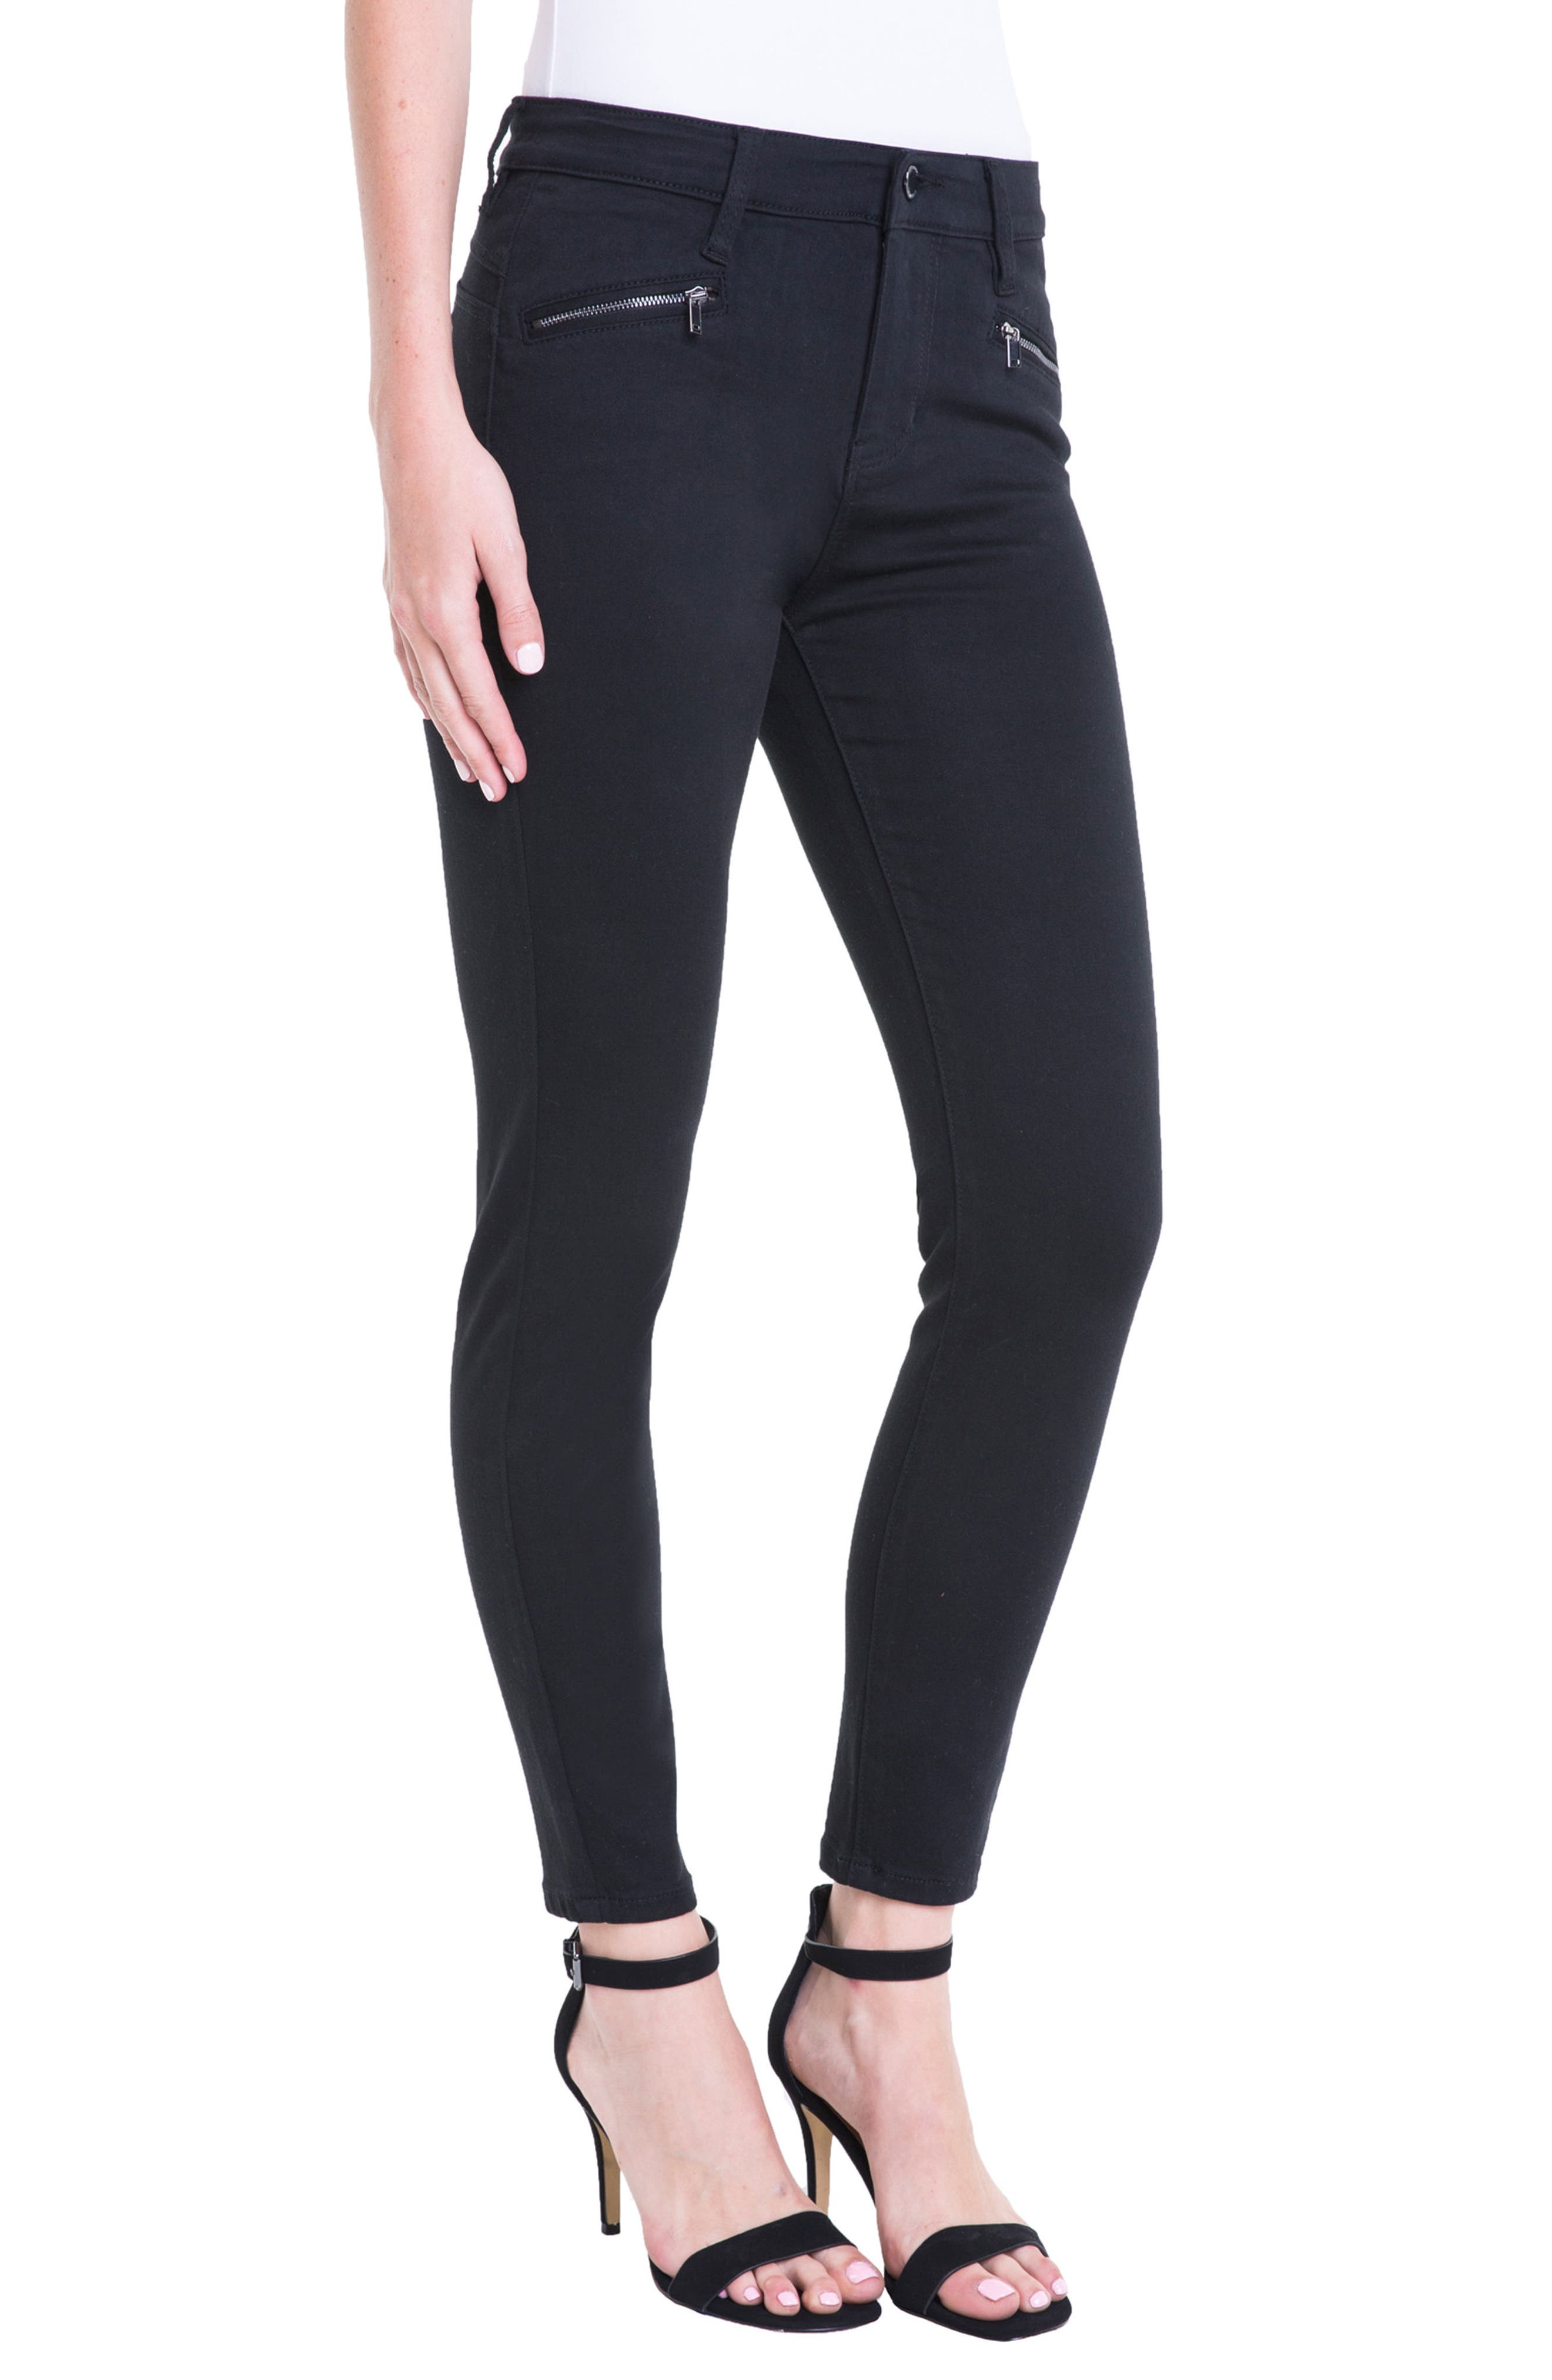 Remy Zipper Stretch Skinny Jeans,                             Alternate thumbnail 4, color,                             Black Rinse